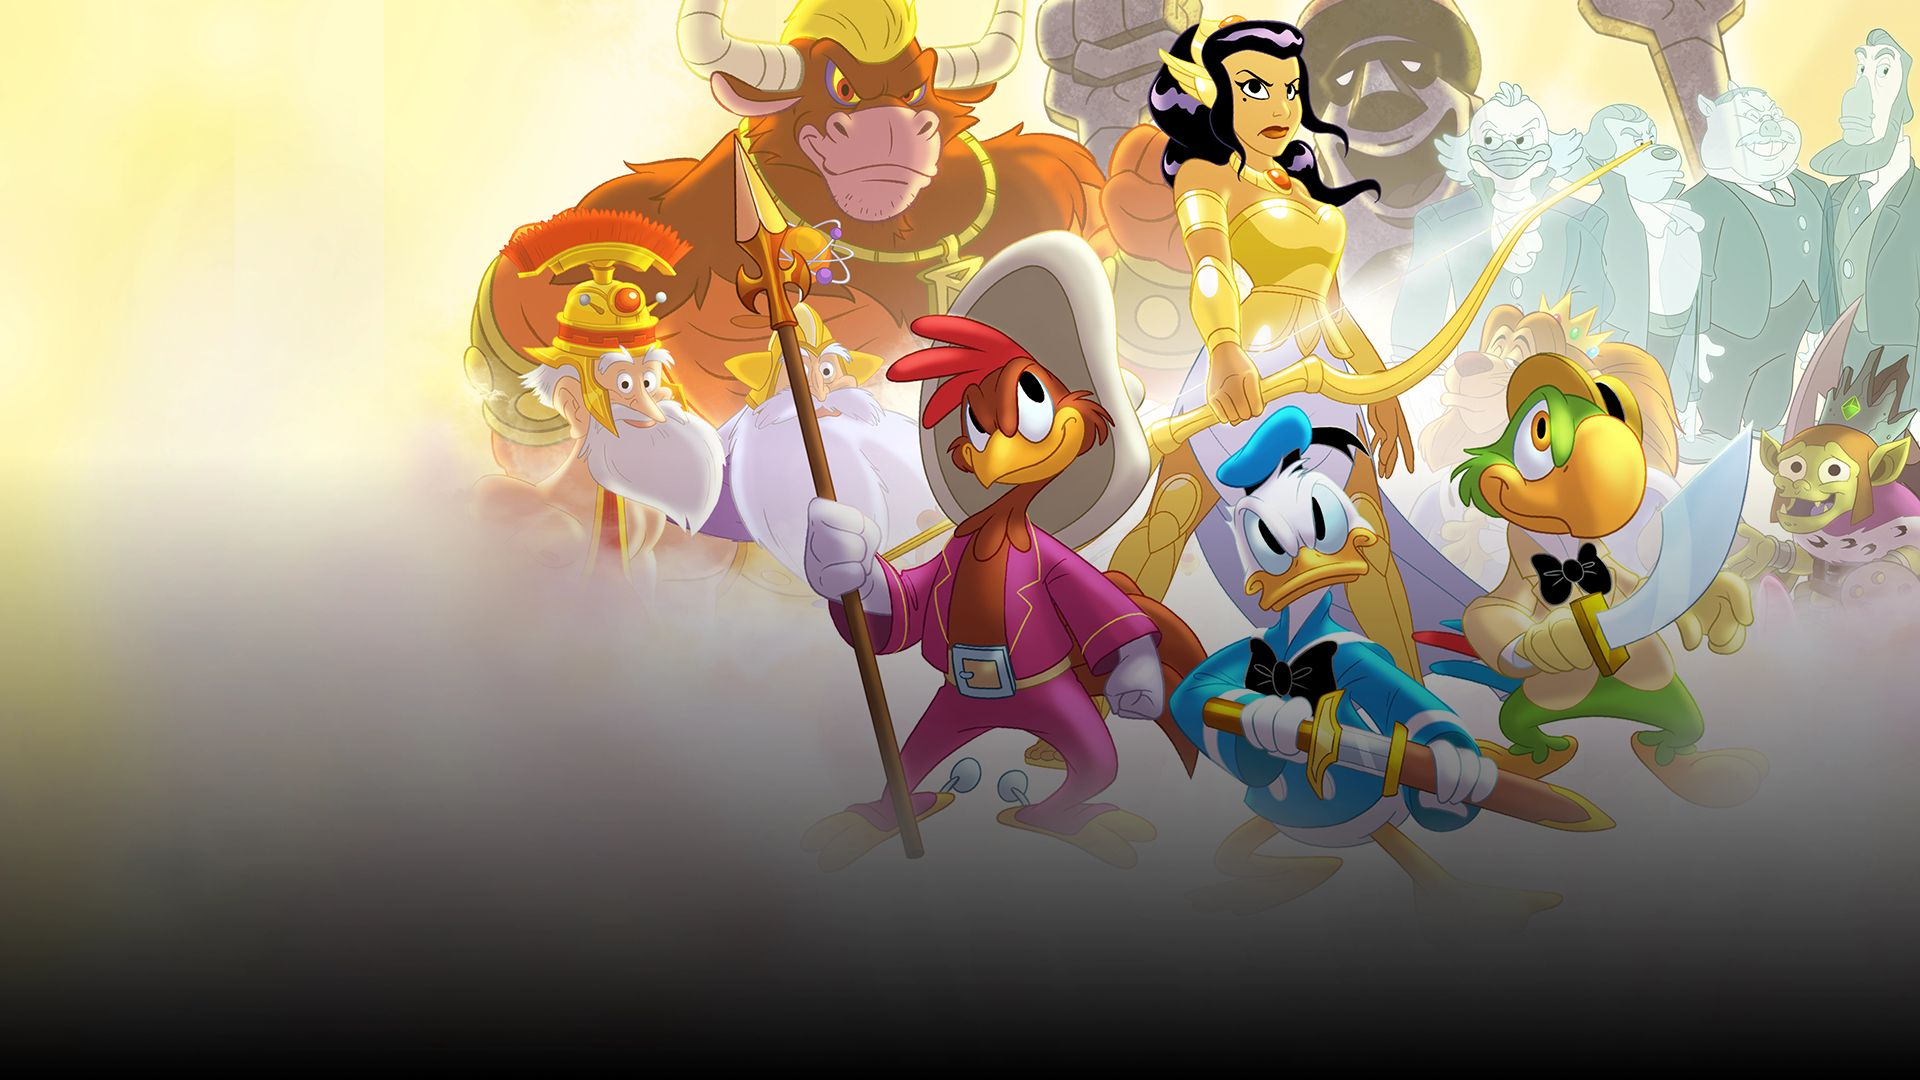 Disney Legend of the Three Caballeros